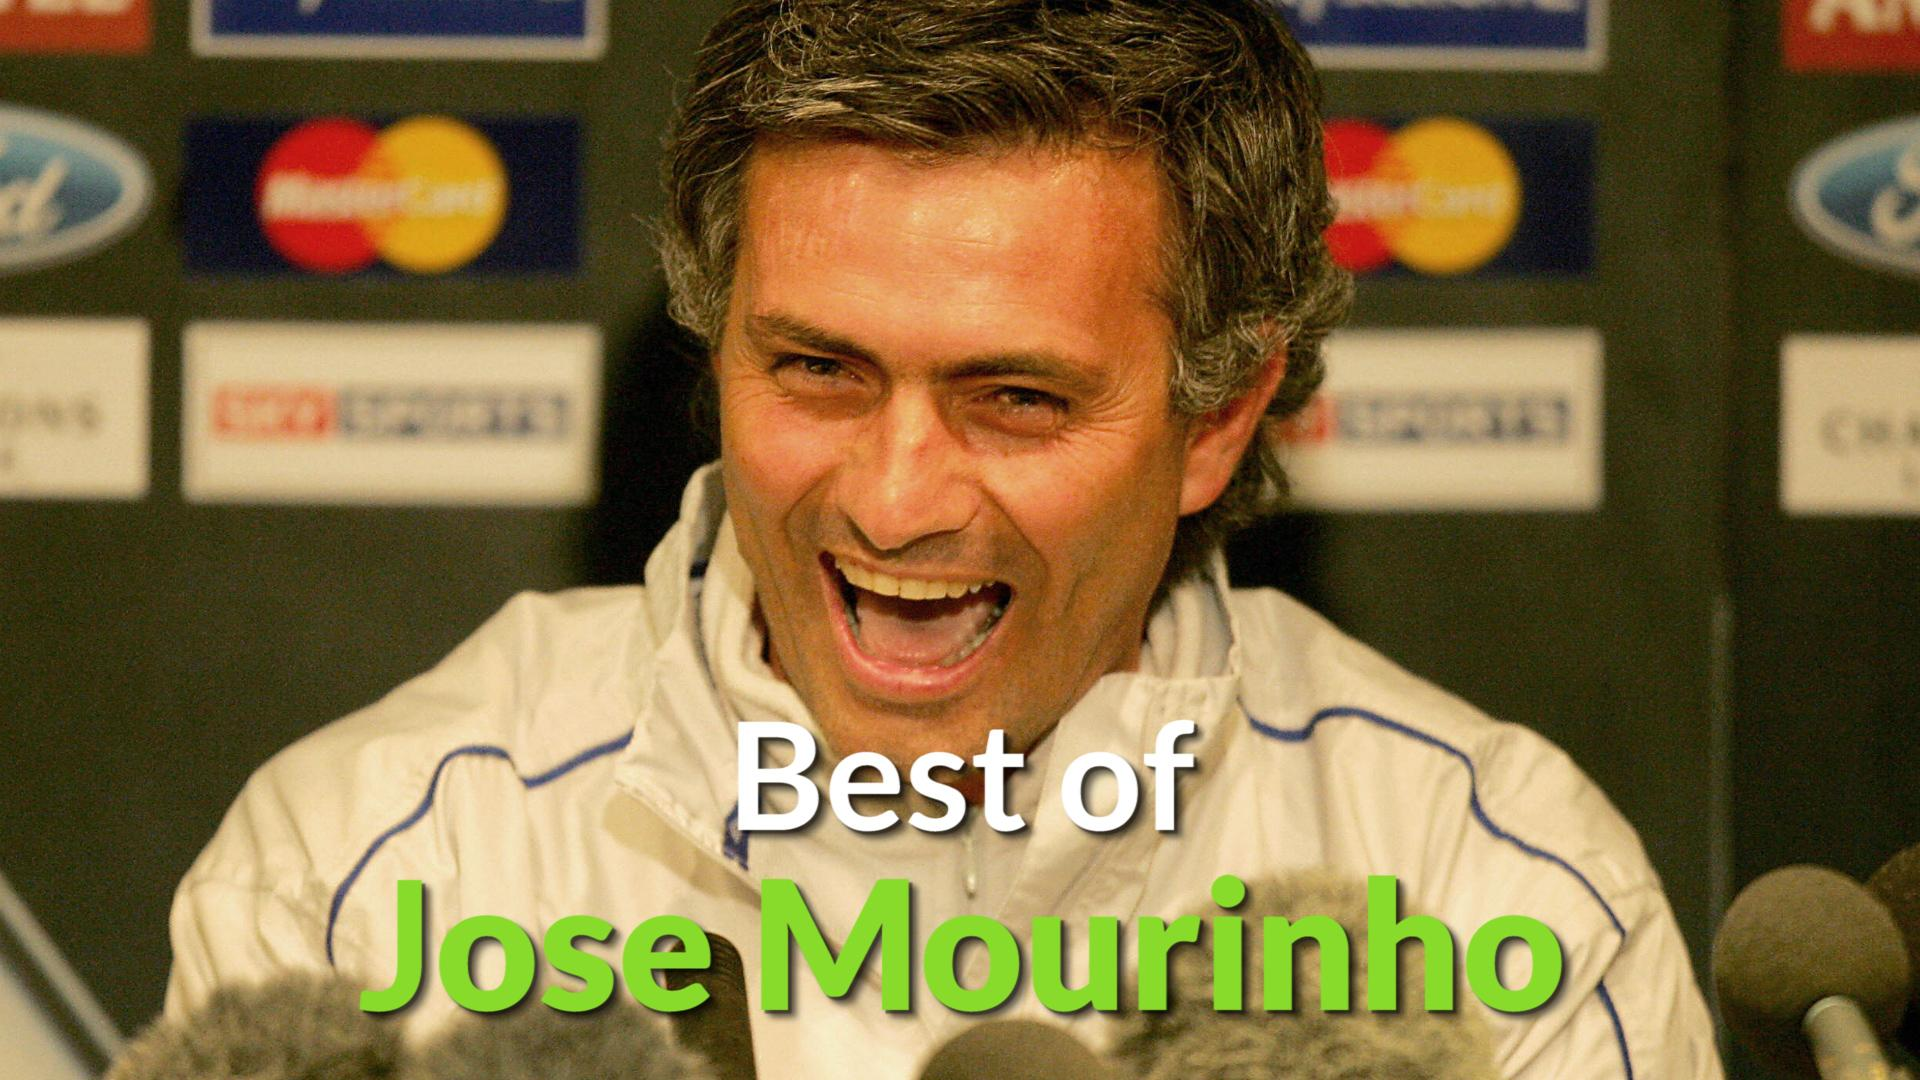 The Best Of Jose Mourinho